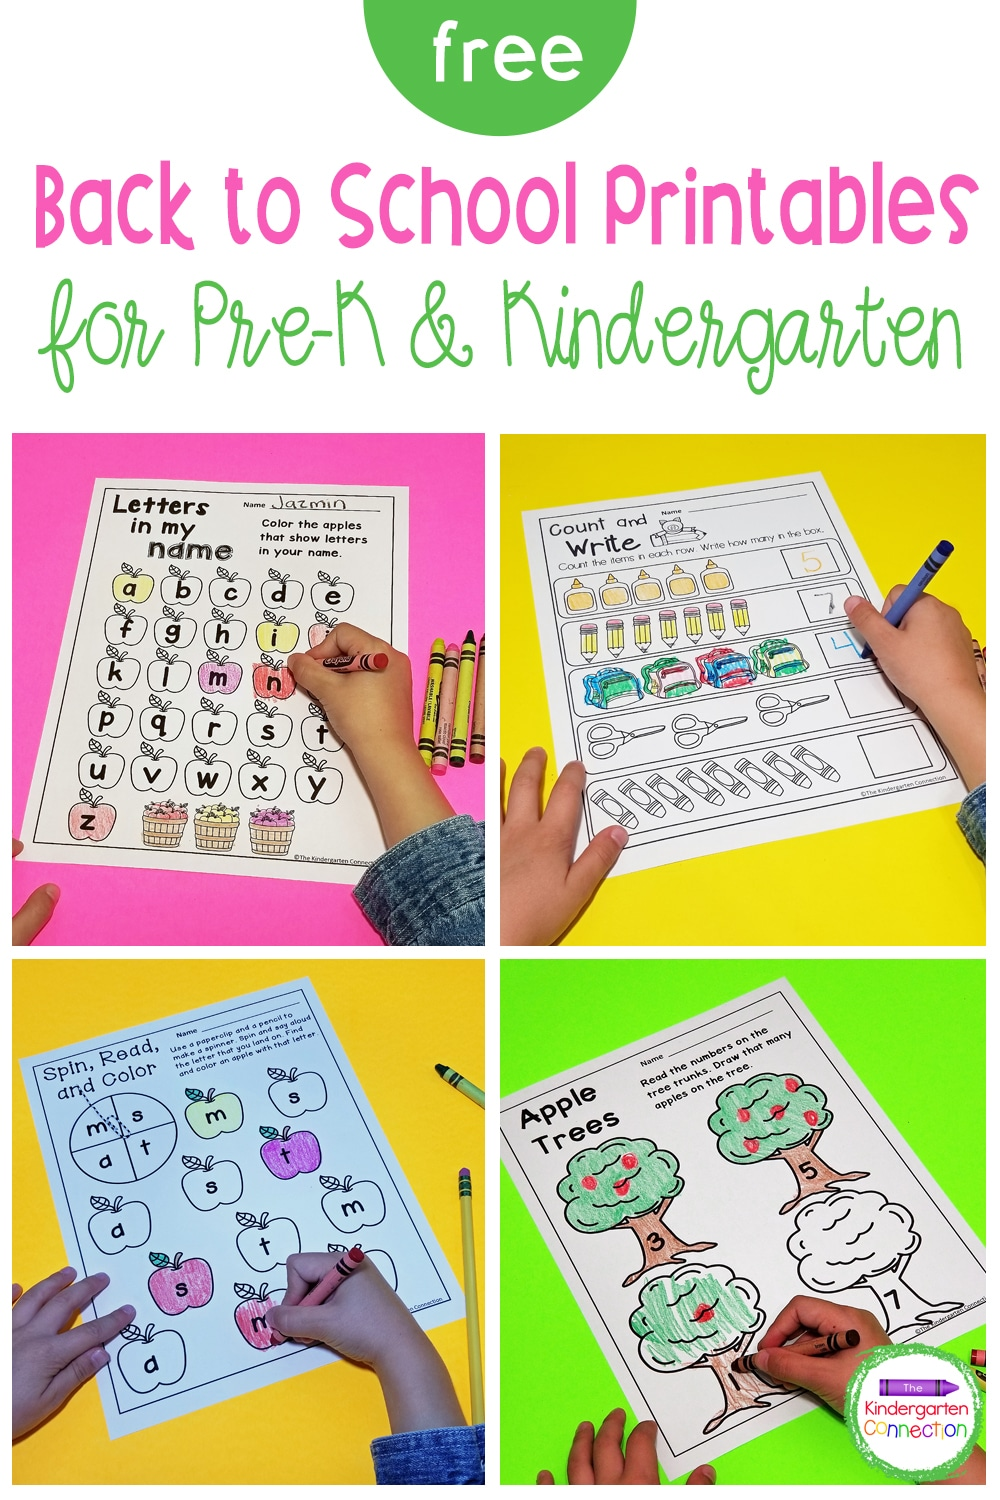 These Back to School printables for Pre-K & Kindergarten are a quick, low-prep way to have some fun learning those first days back!